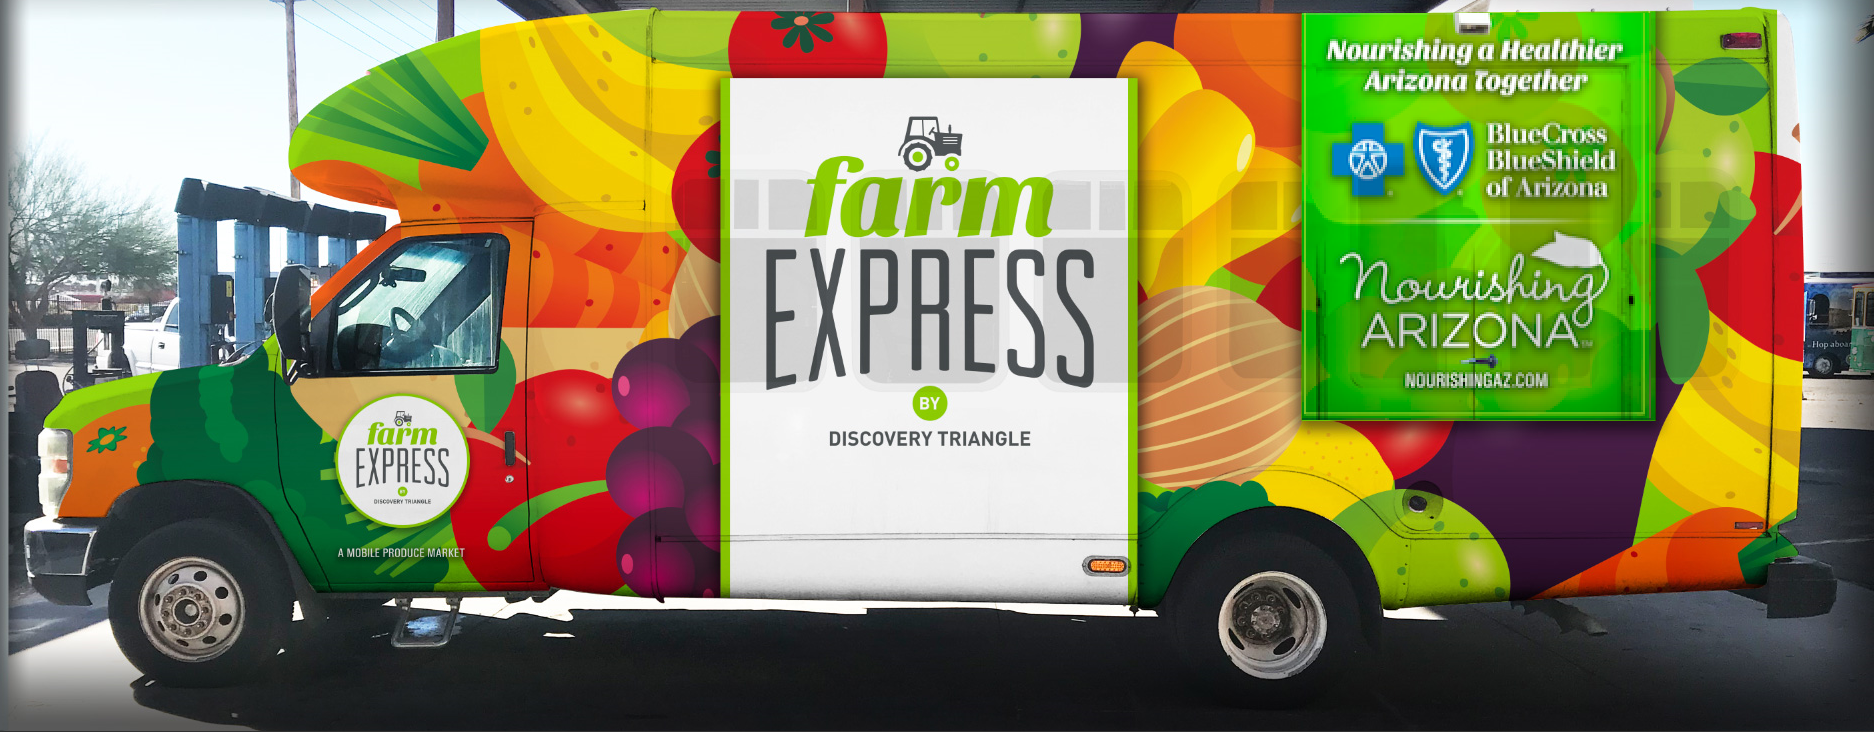 Farm Express bus brings fresh fruits and vegetables to food deserts across the state of Arizona.